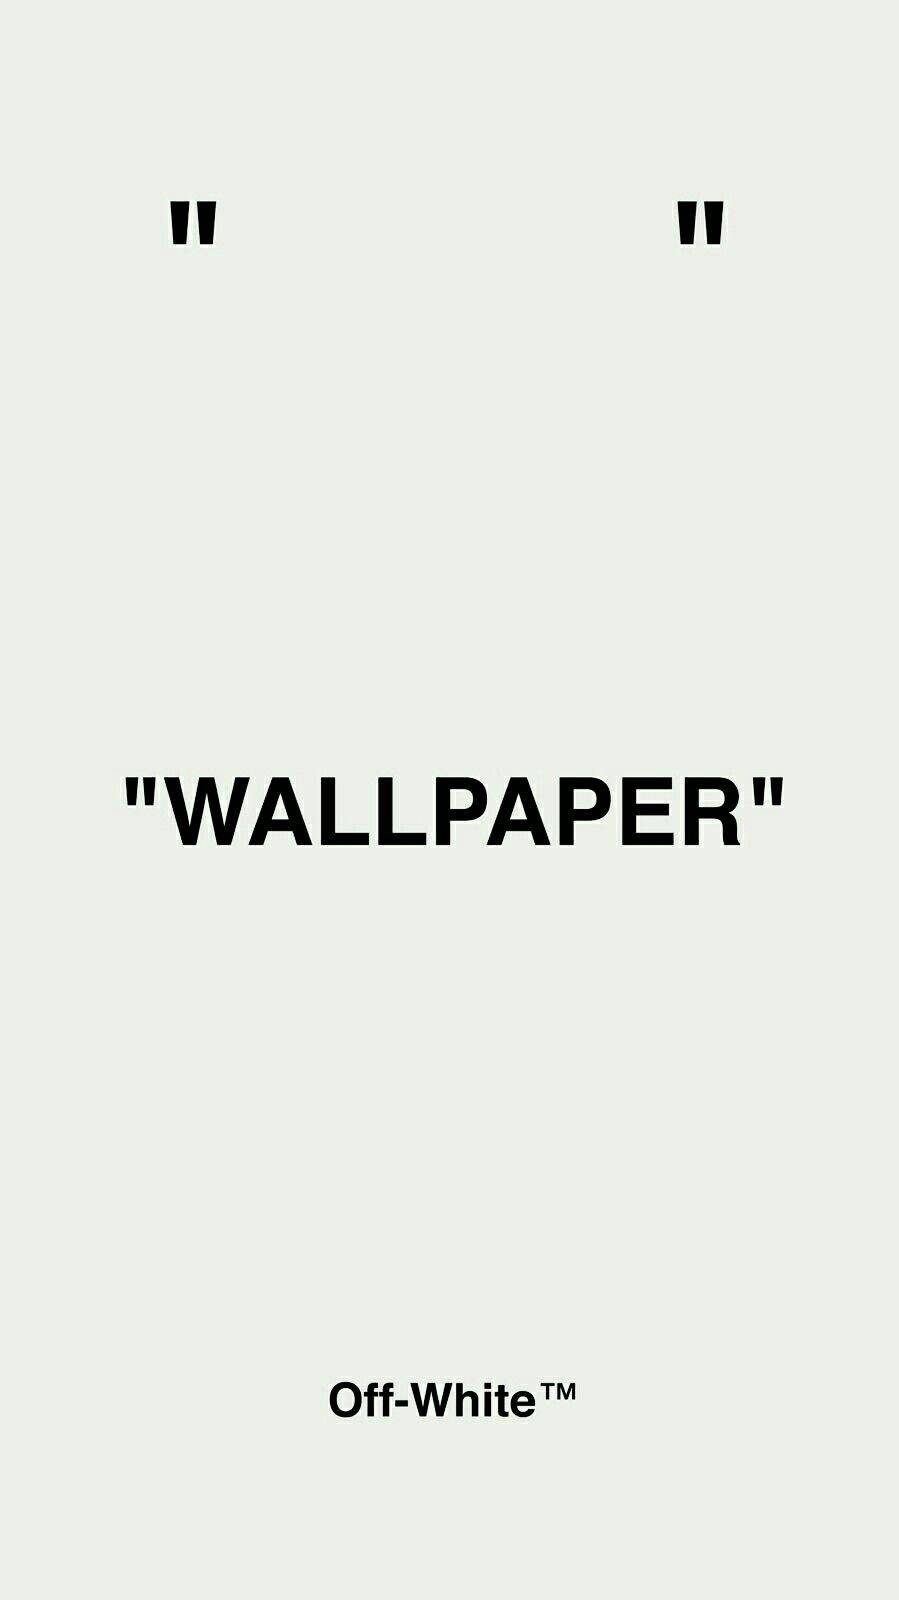 Wallpapers Off White Fresh Wallpapers For Your Phone